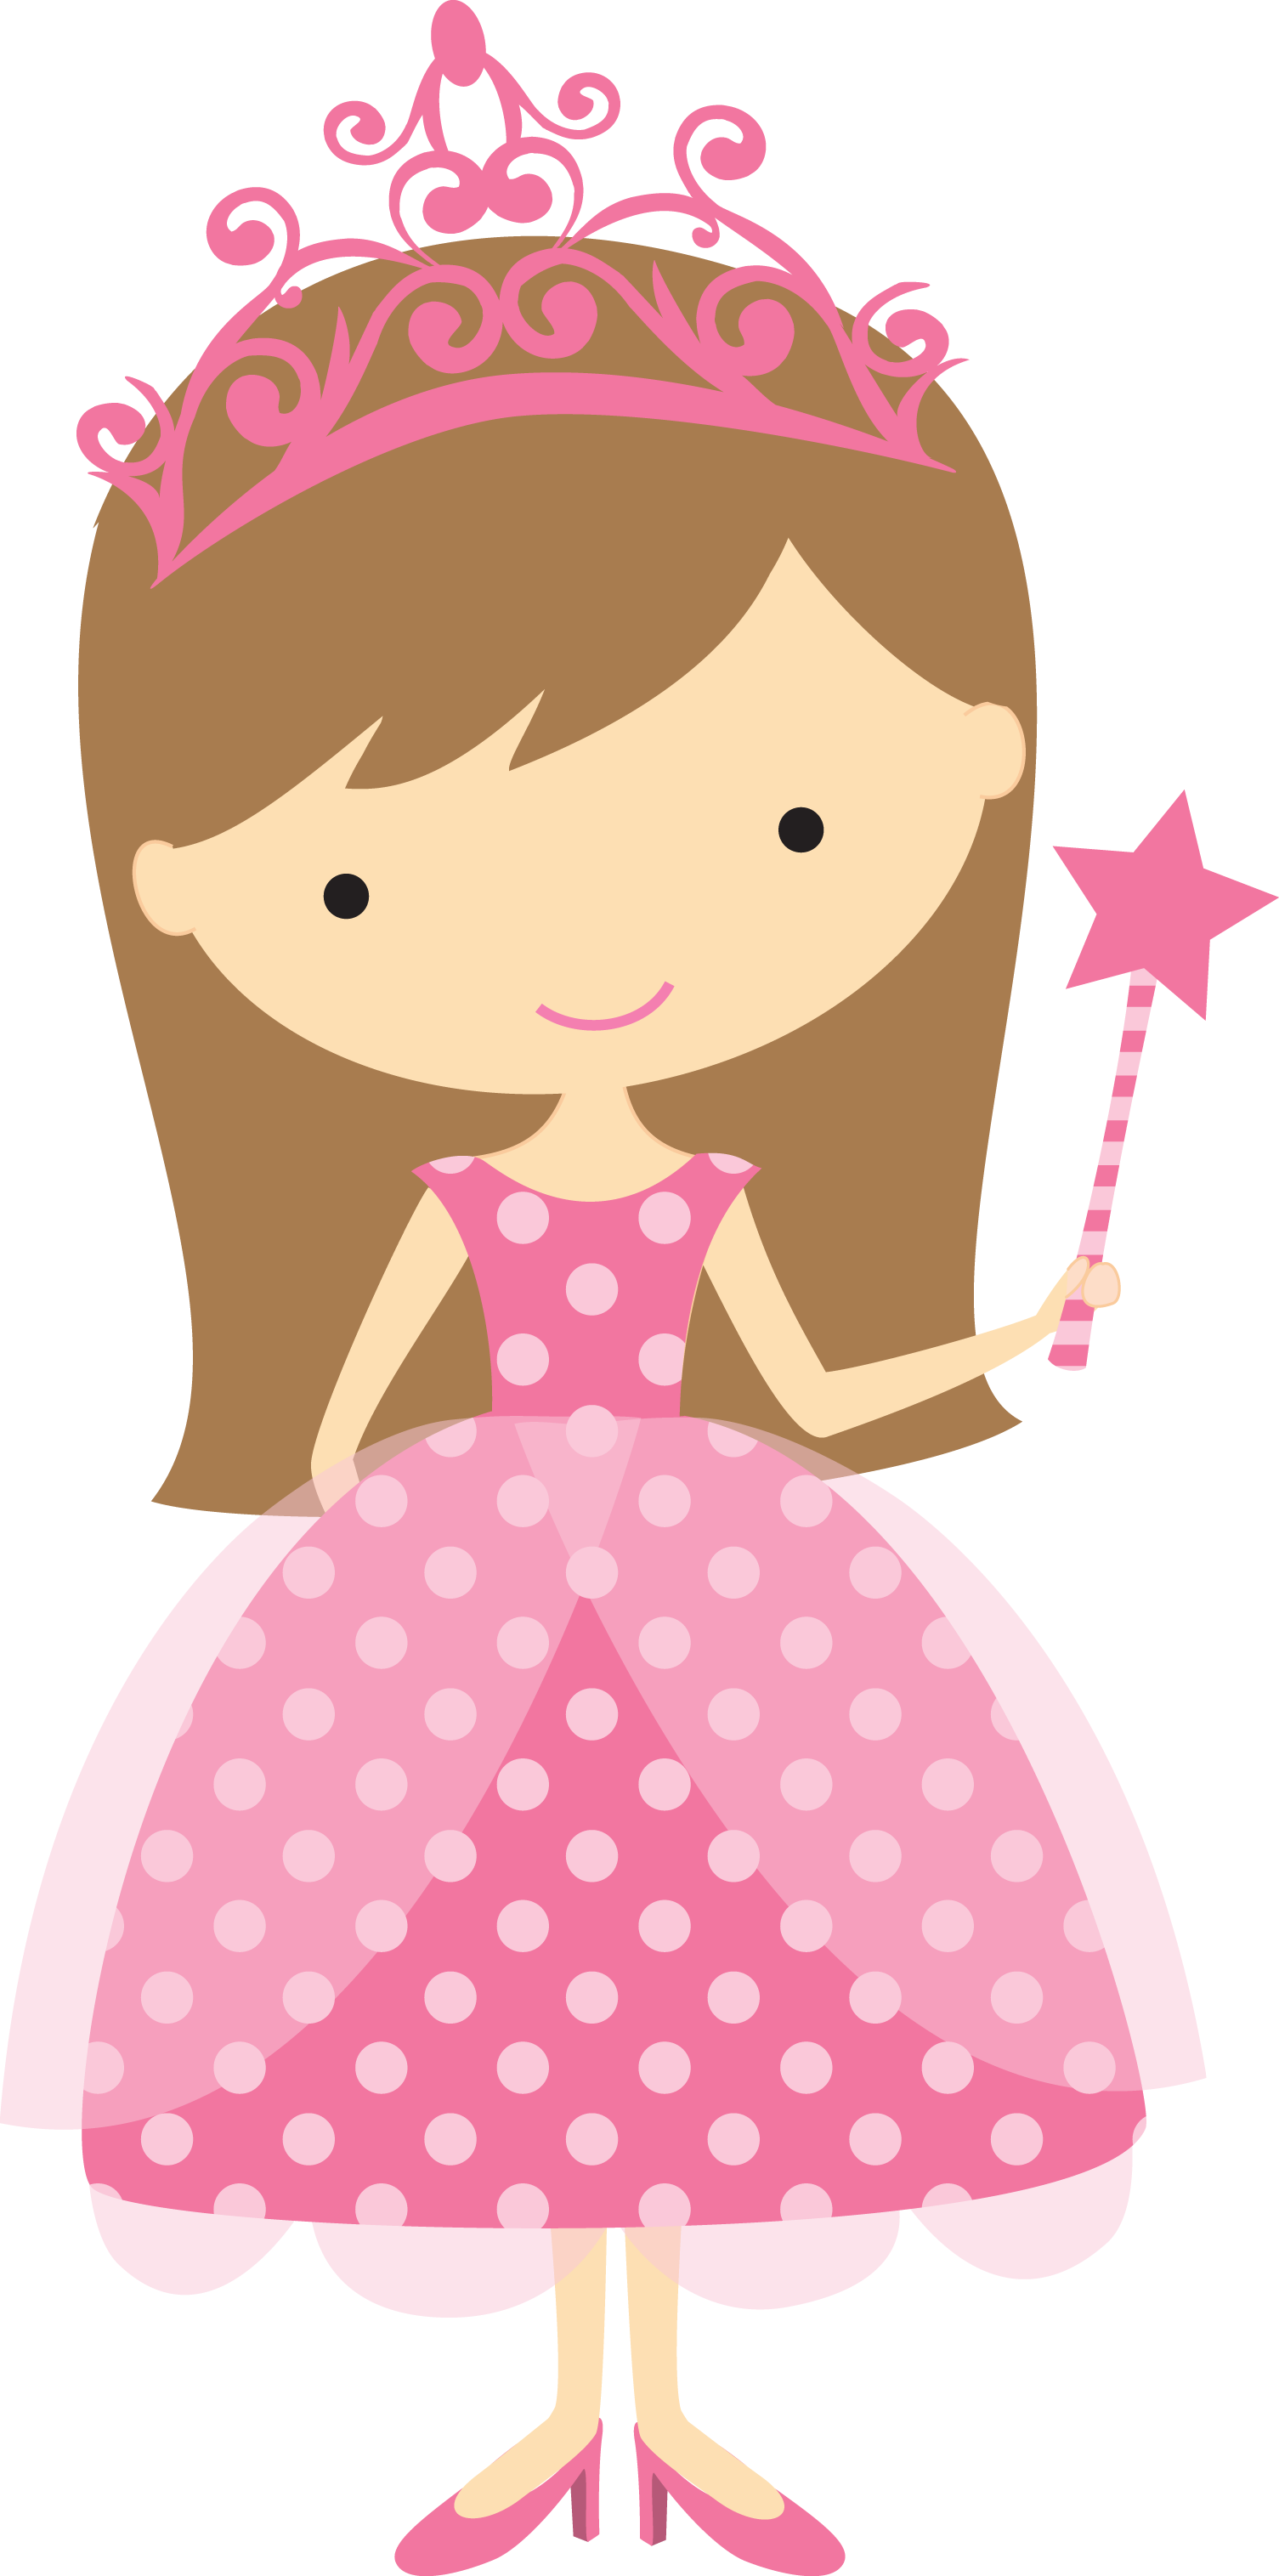 graphic transparent stock  pretty png images. Girly clipart princess.